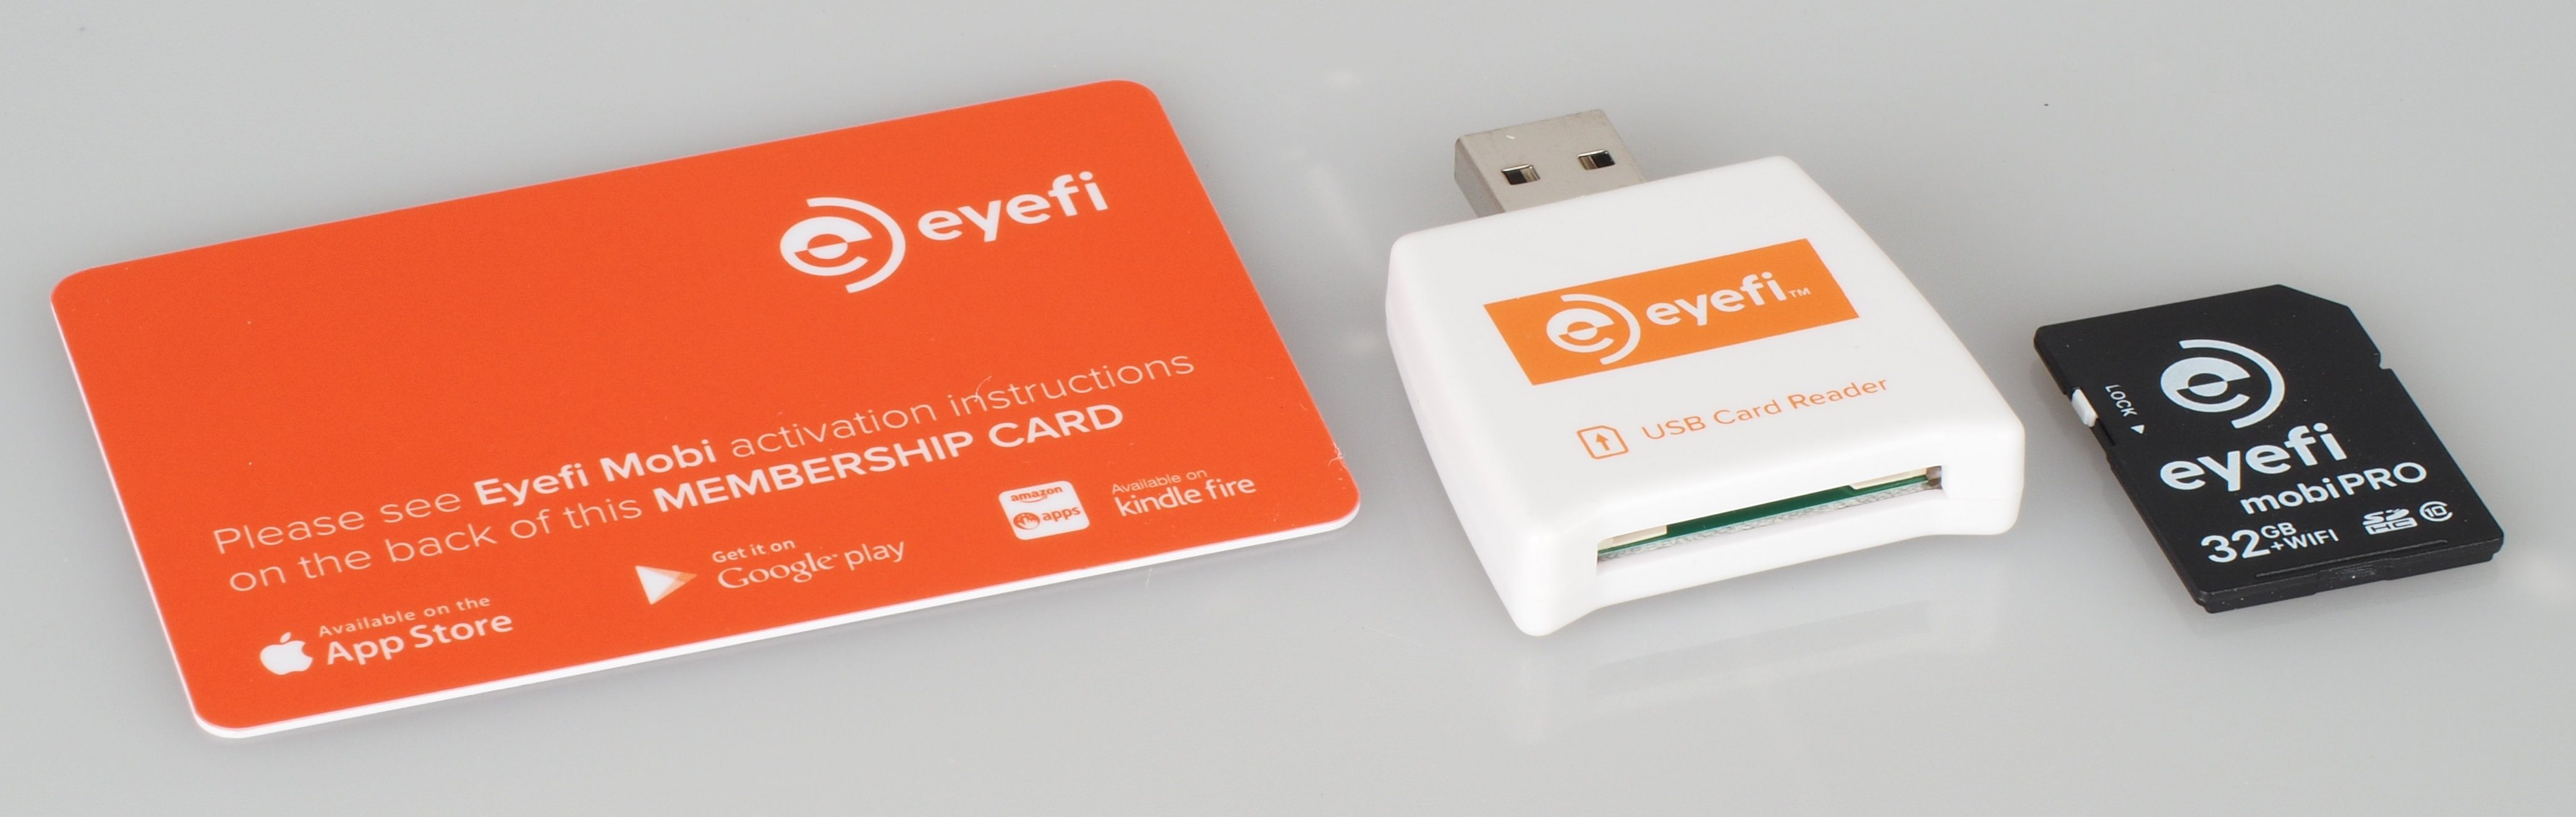 Eyefi Mobi App >> Eyefi Mobi Pro 32gb Sdhc Card Review